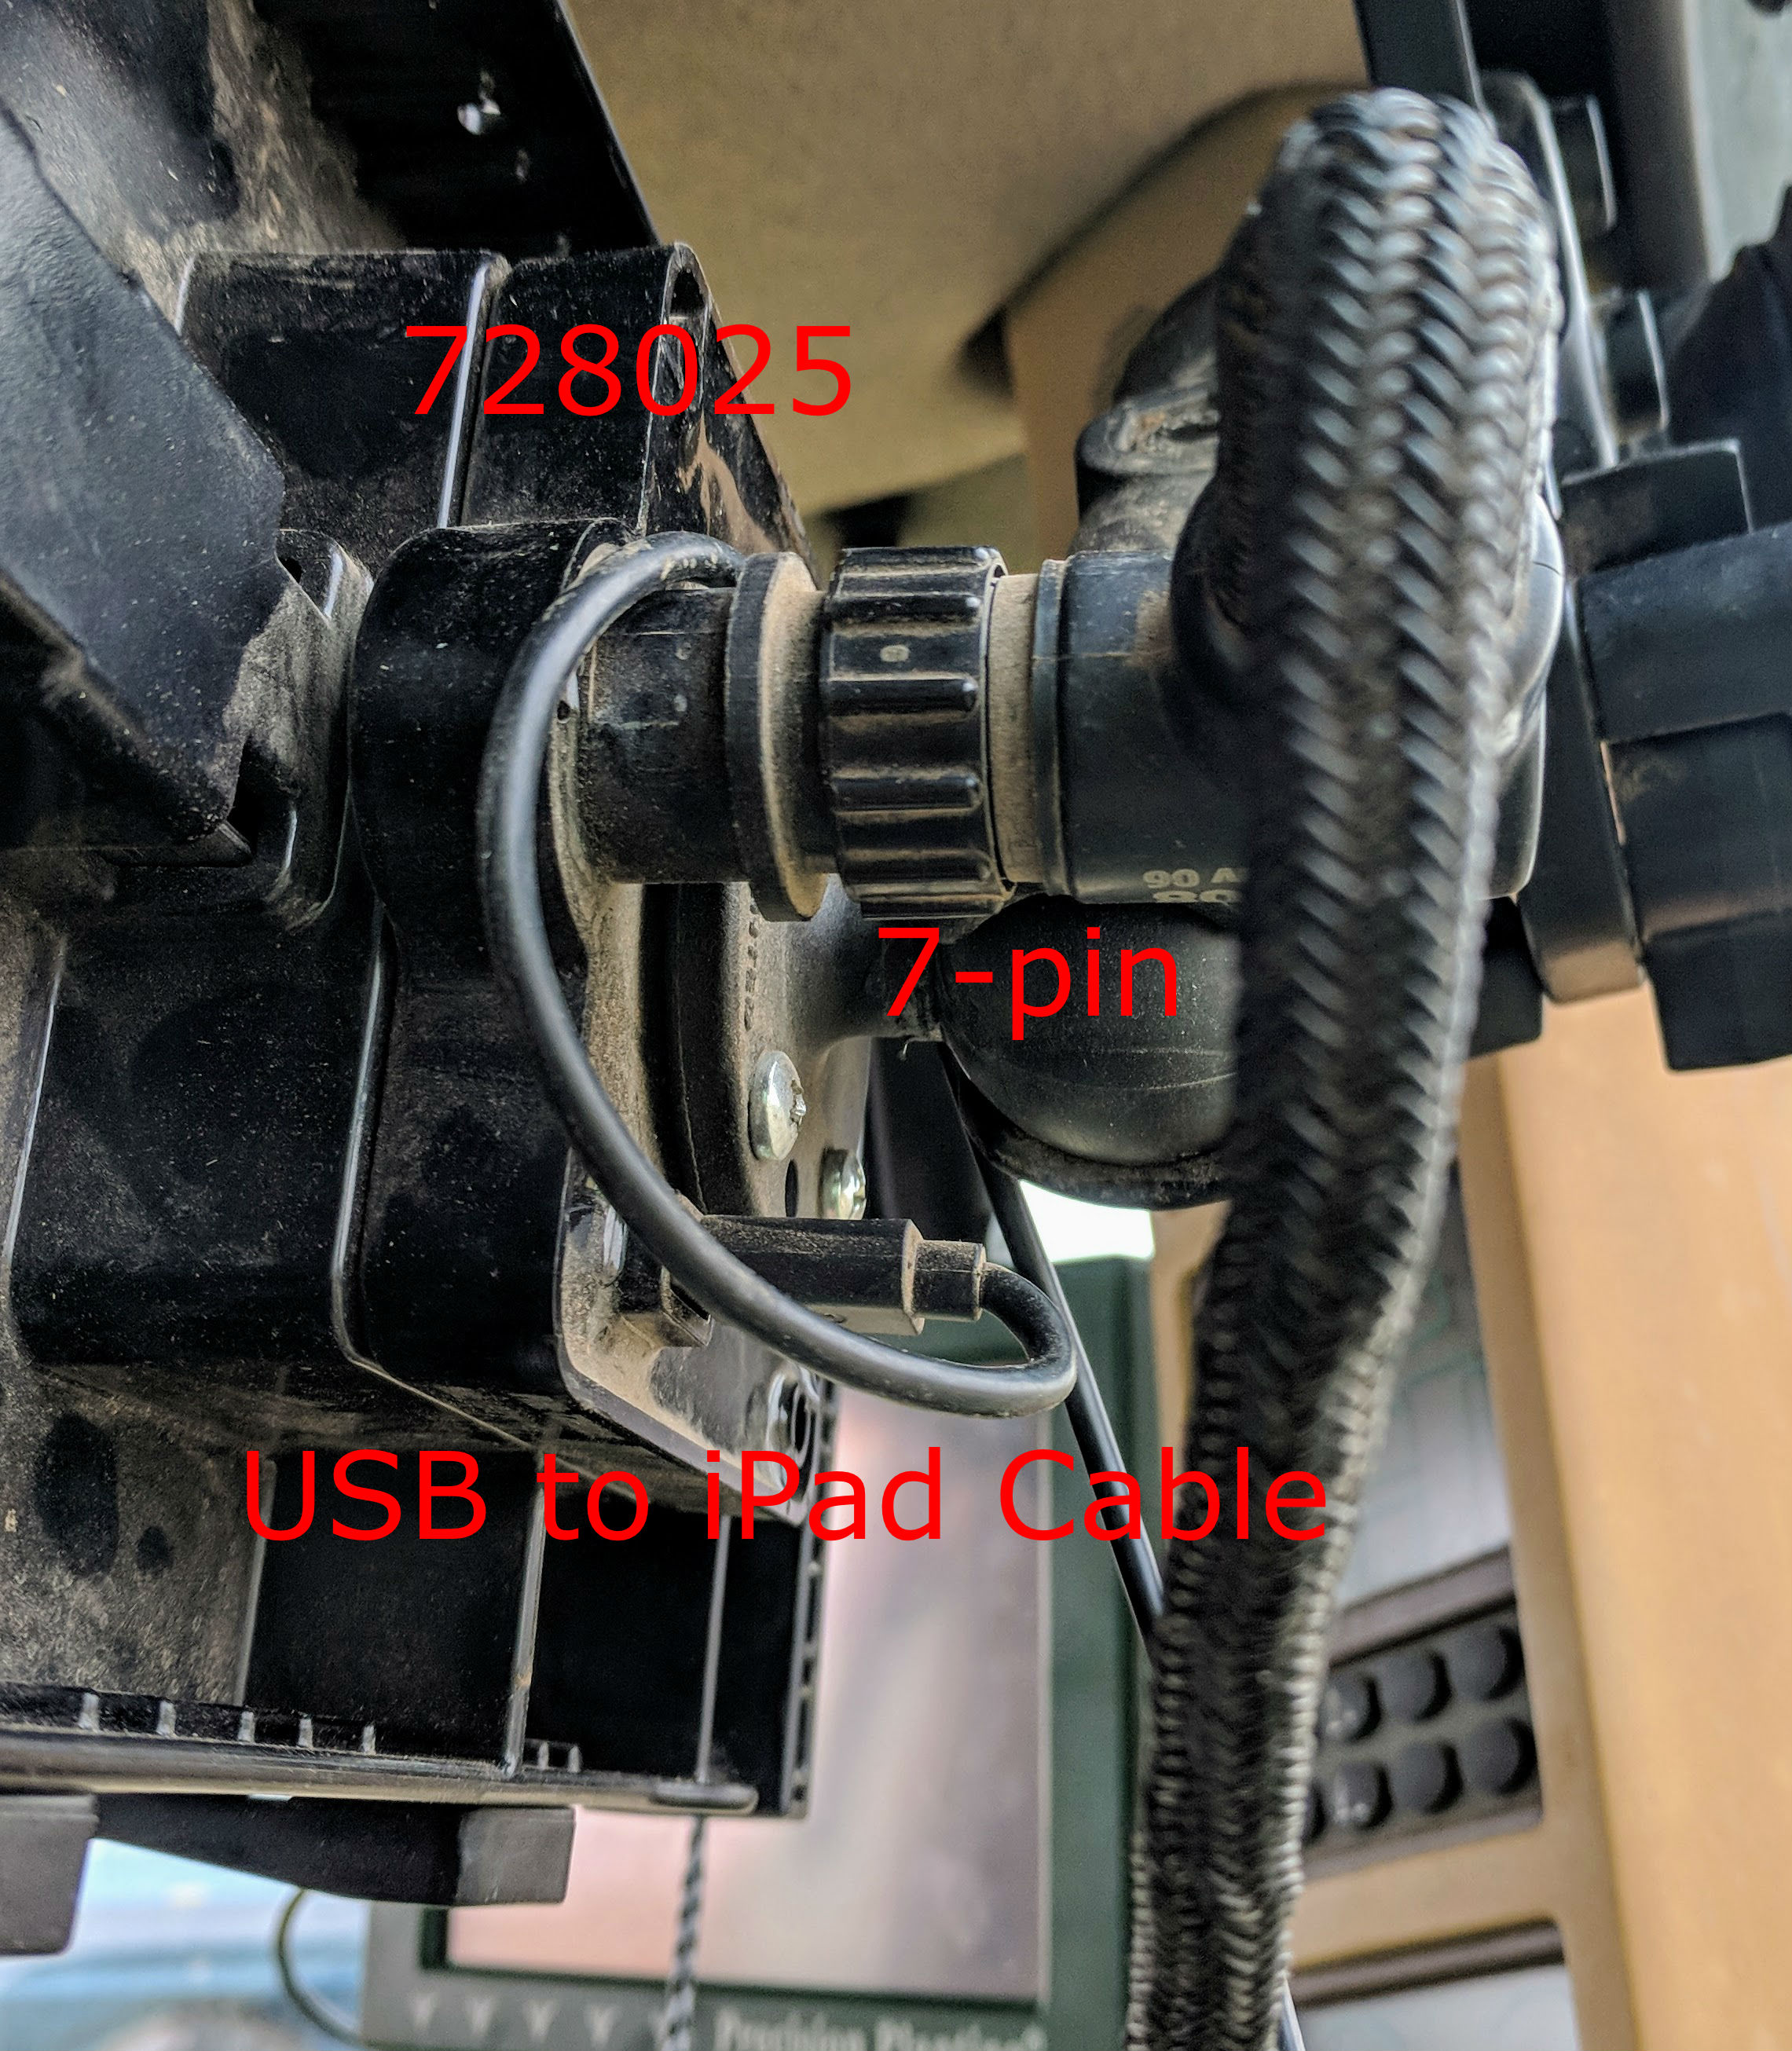 Gen 1 20 Planterology Ipad Wiring Harness The 7 Pin Connector End Of Fieldview Module Is Plugged Into 728025 Usually On Back Tray